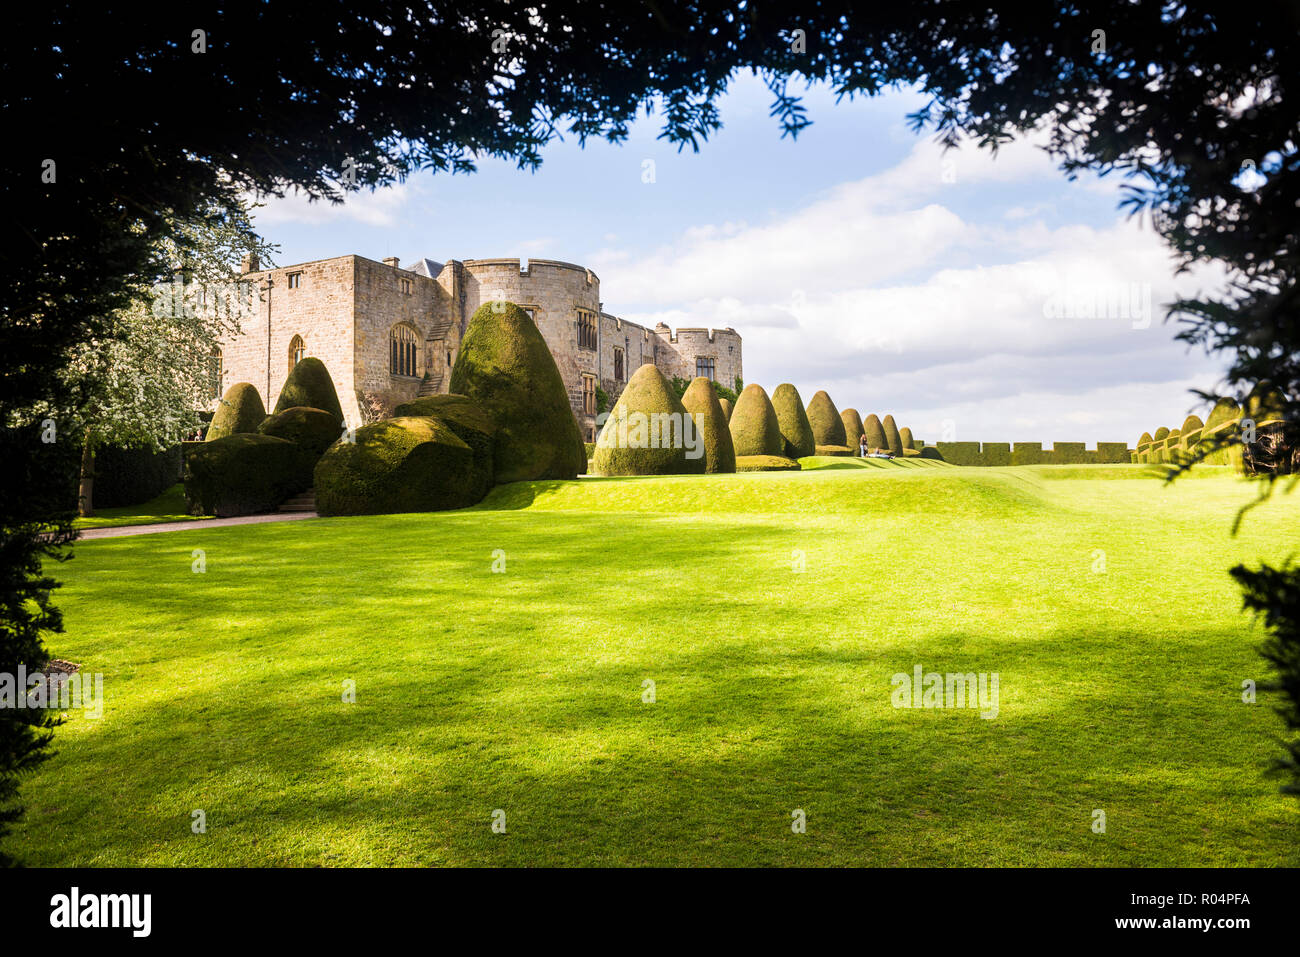 Chirk Castle, near Wrexham, North Wales, United Kingdom